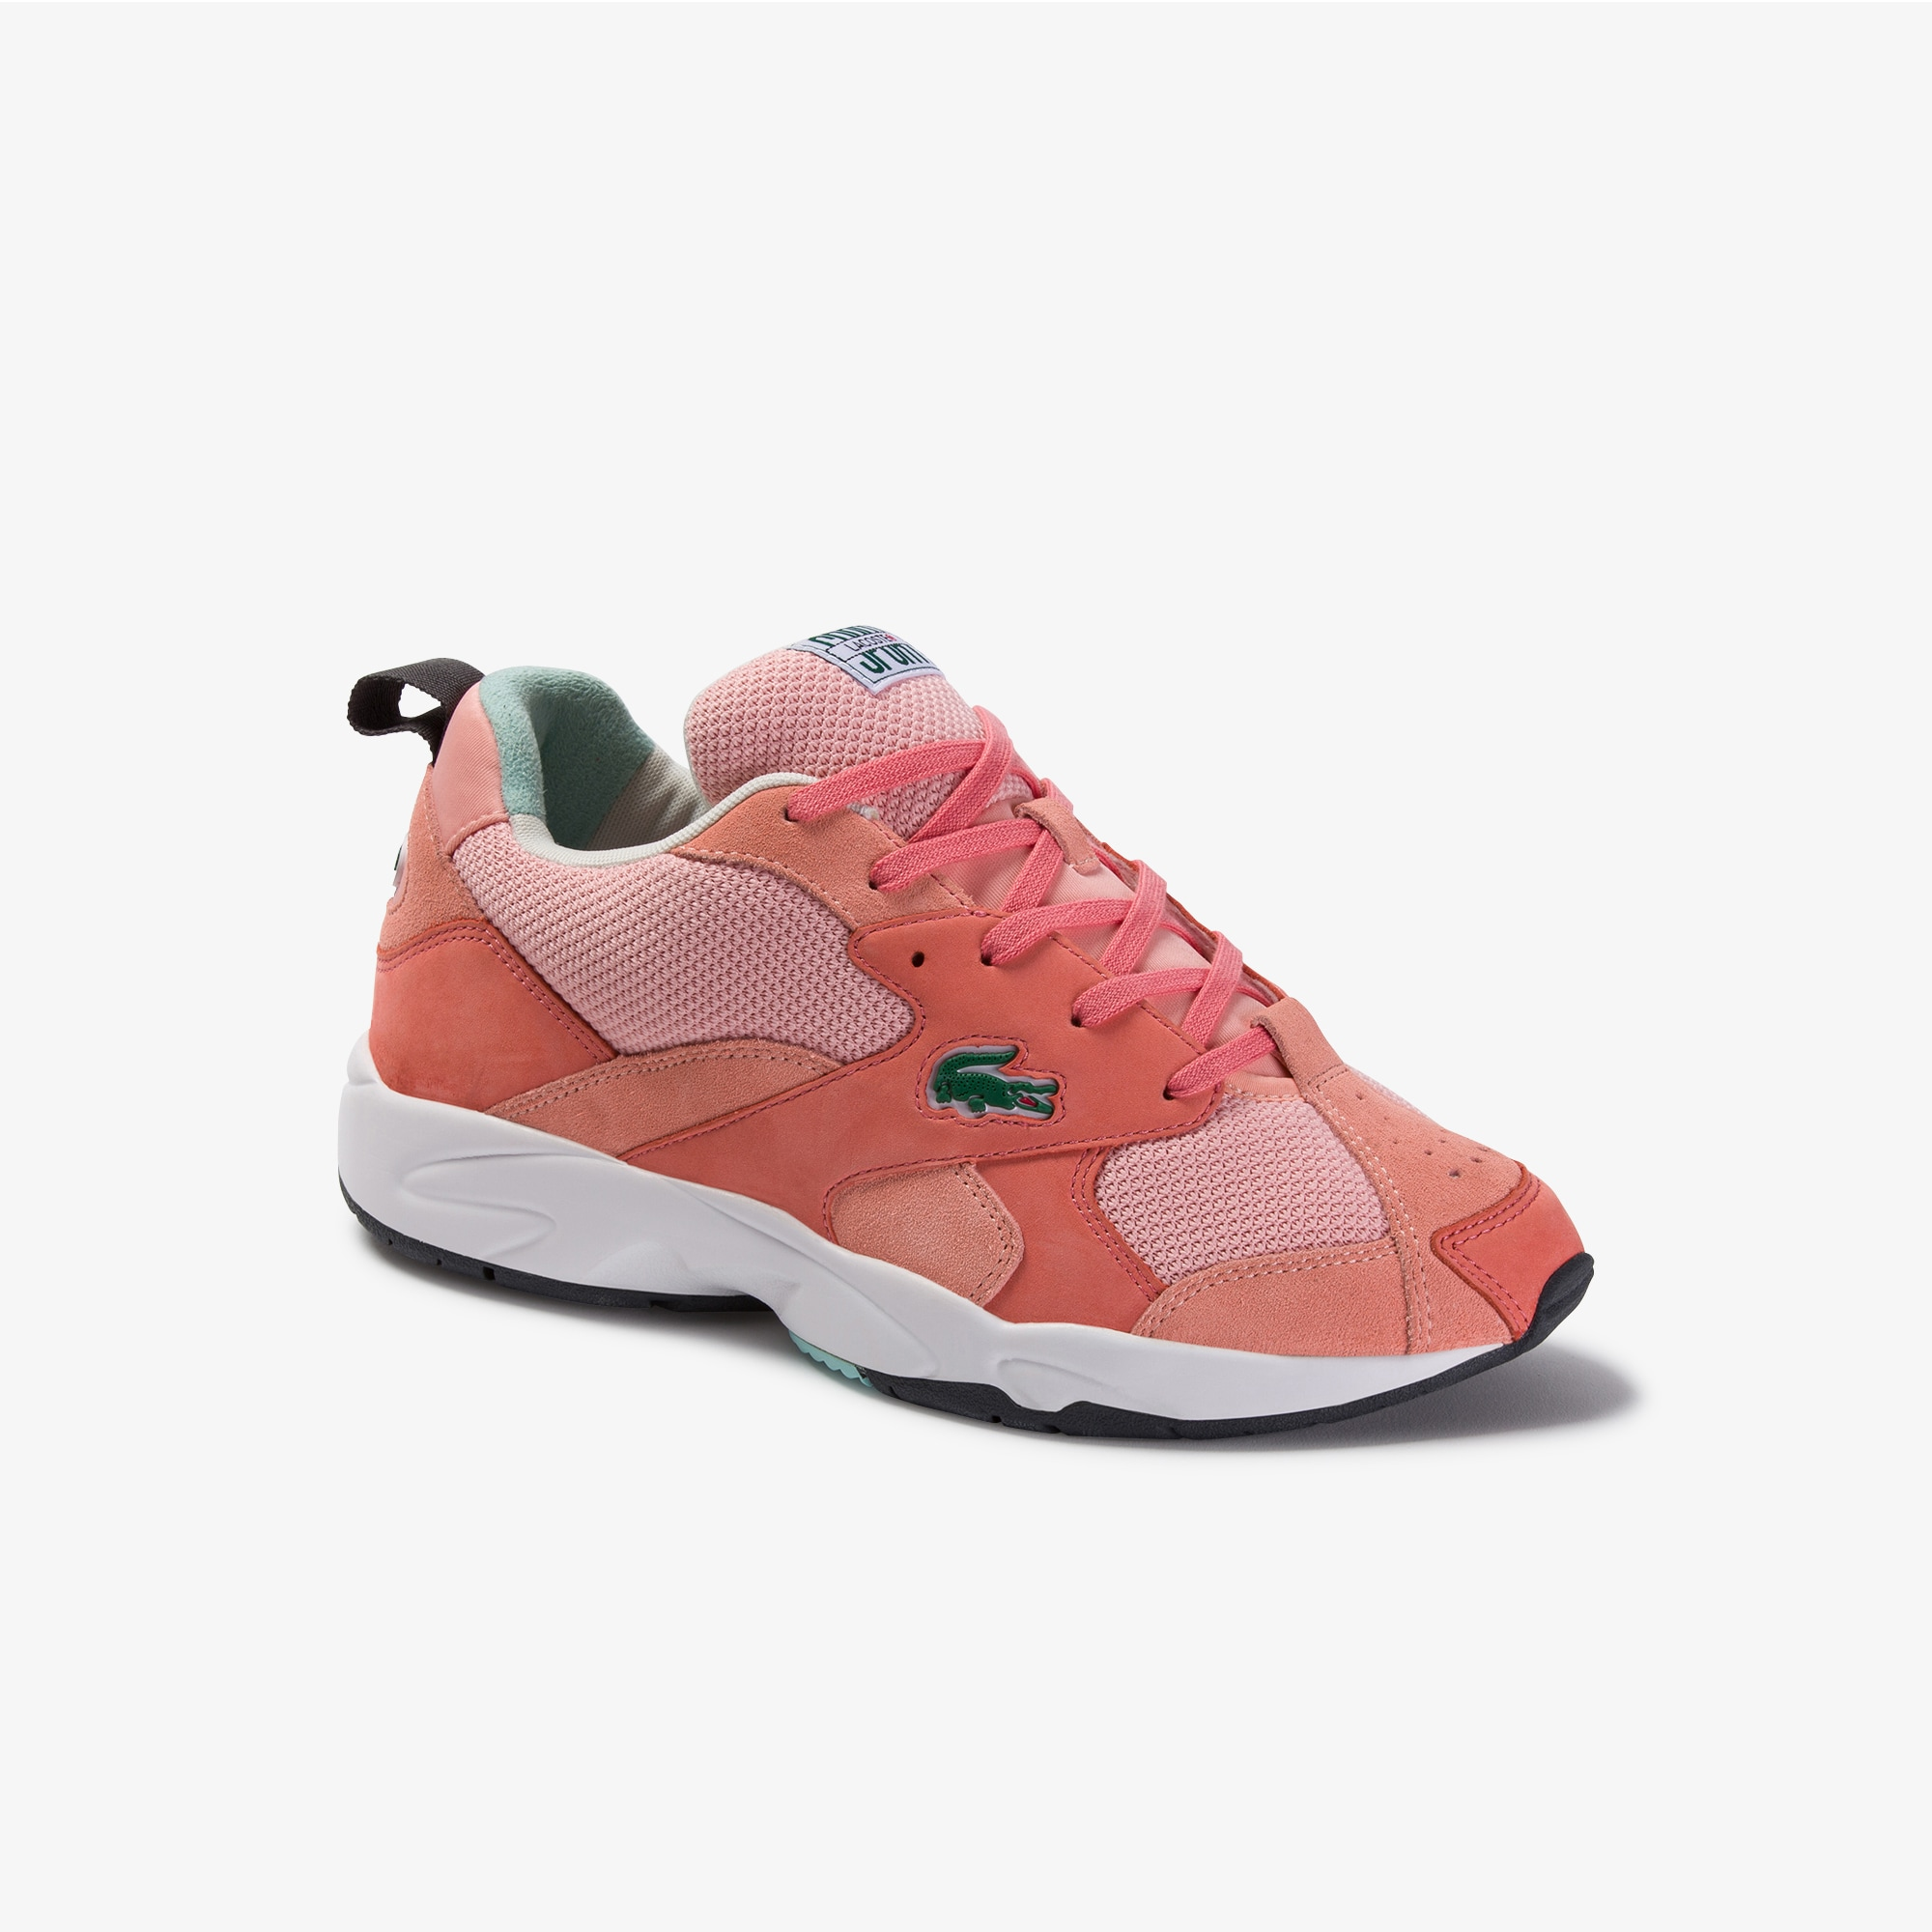 Lacoste Mens Storm 96 Mesh and Suede Sneakers